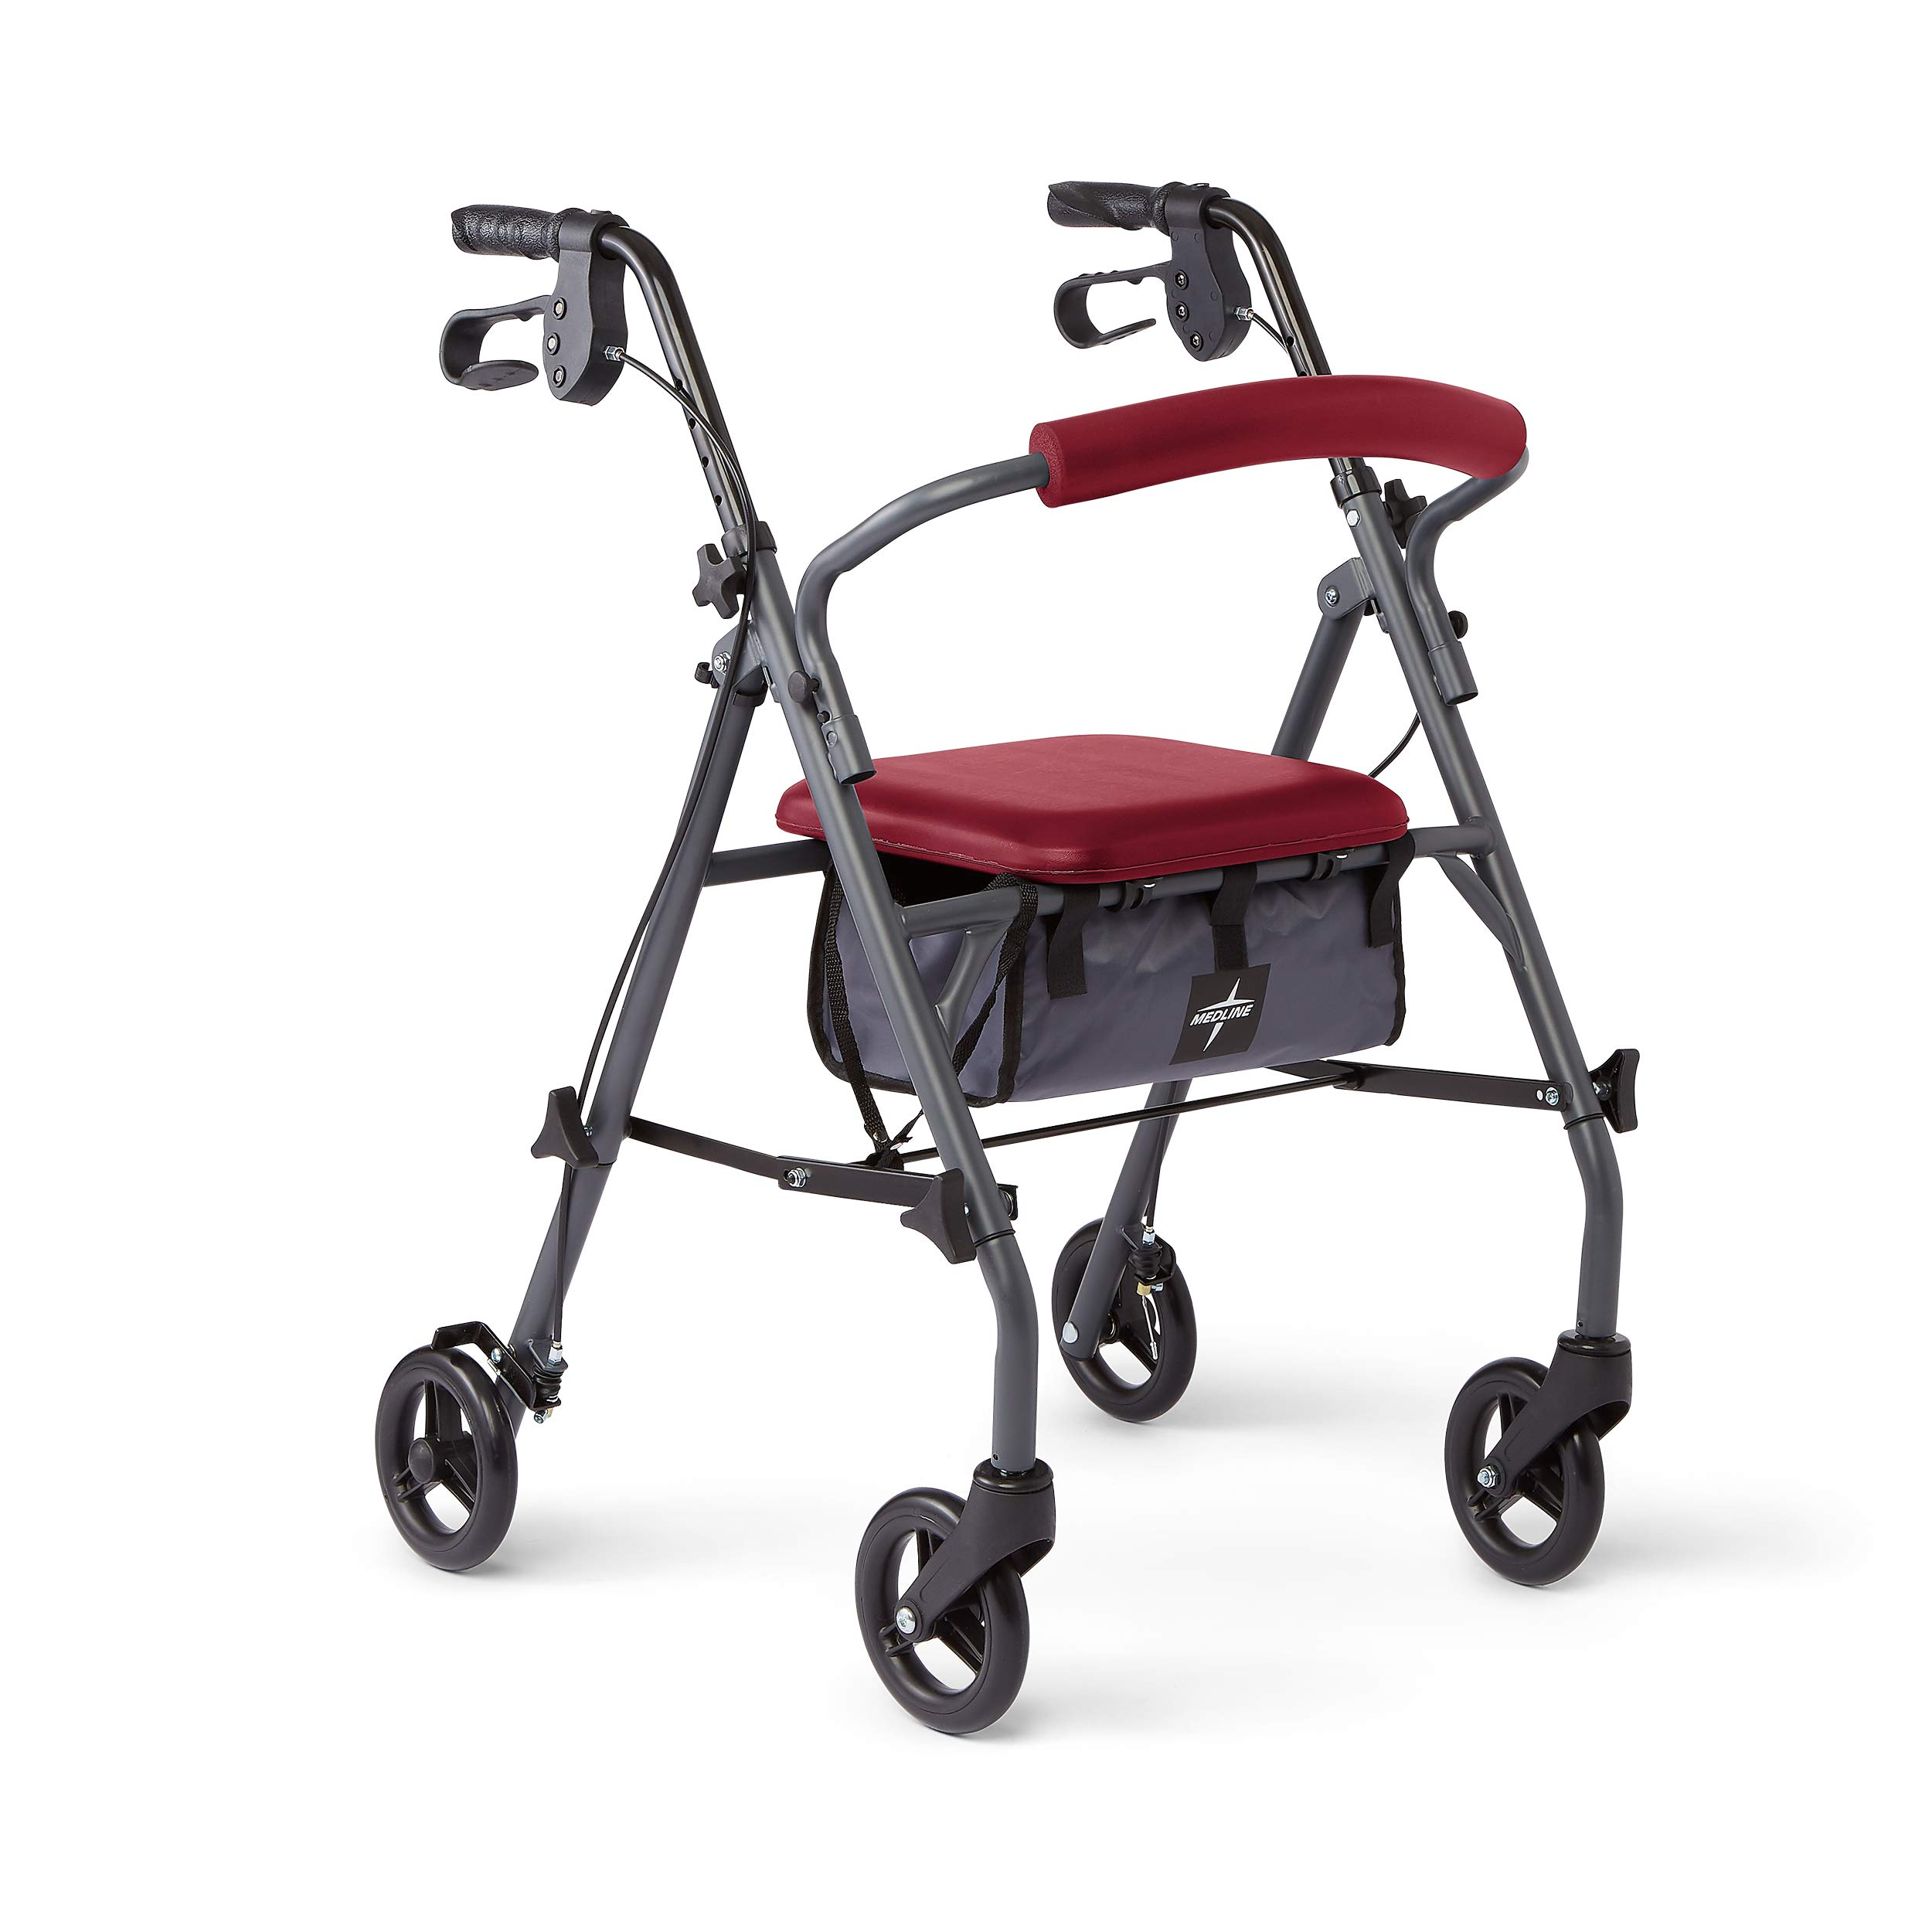 Medline Rollator Walker with Seat and Wheels, Folding Walker for Seniors with Microban Antimicrobial Protection, Durable Steel Frame Supports up to 300 lbs, 6 inch Wheels, Red